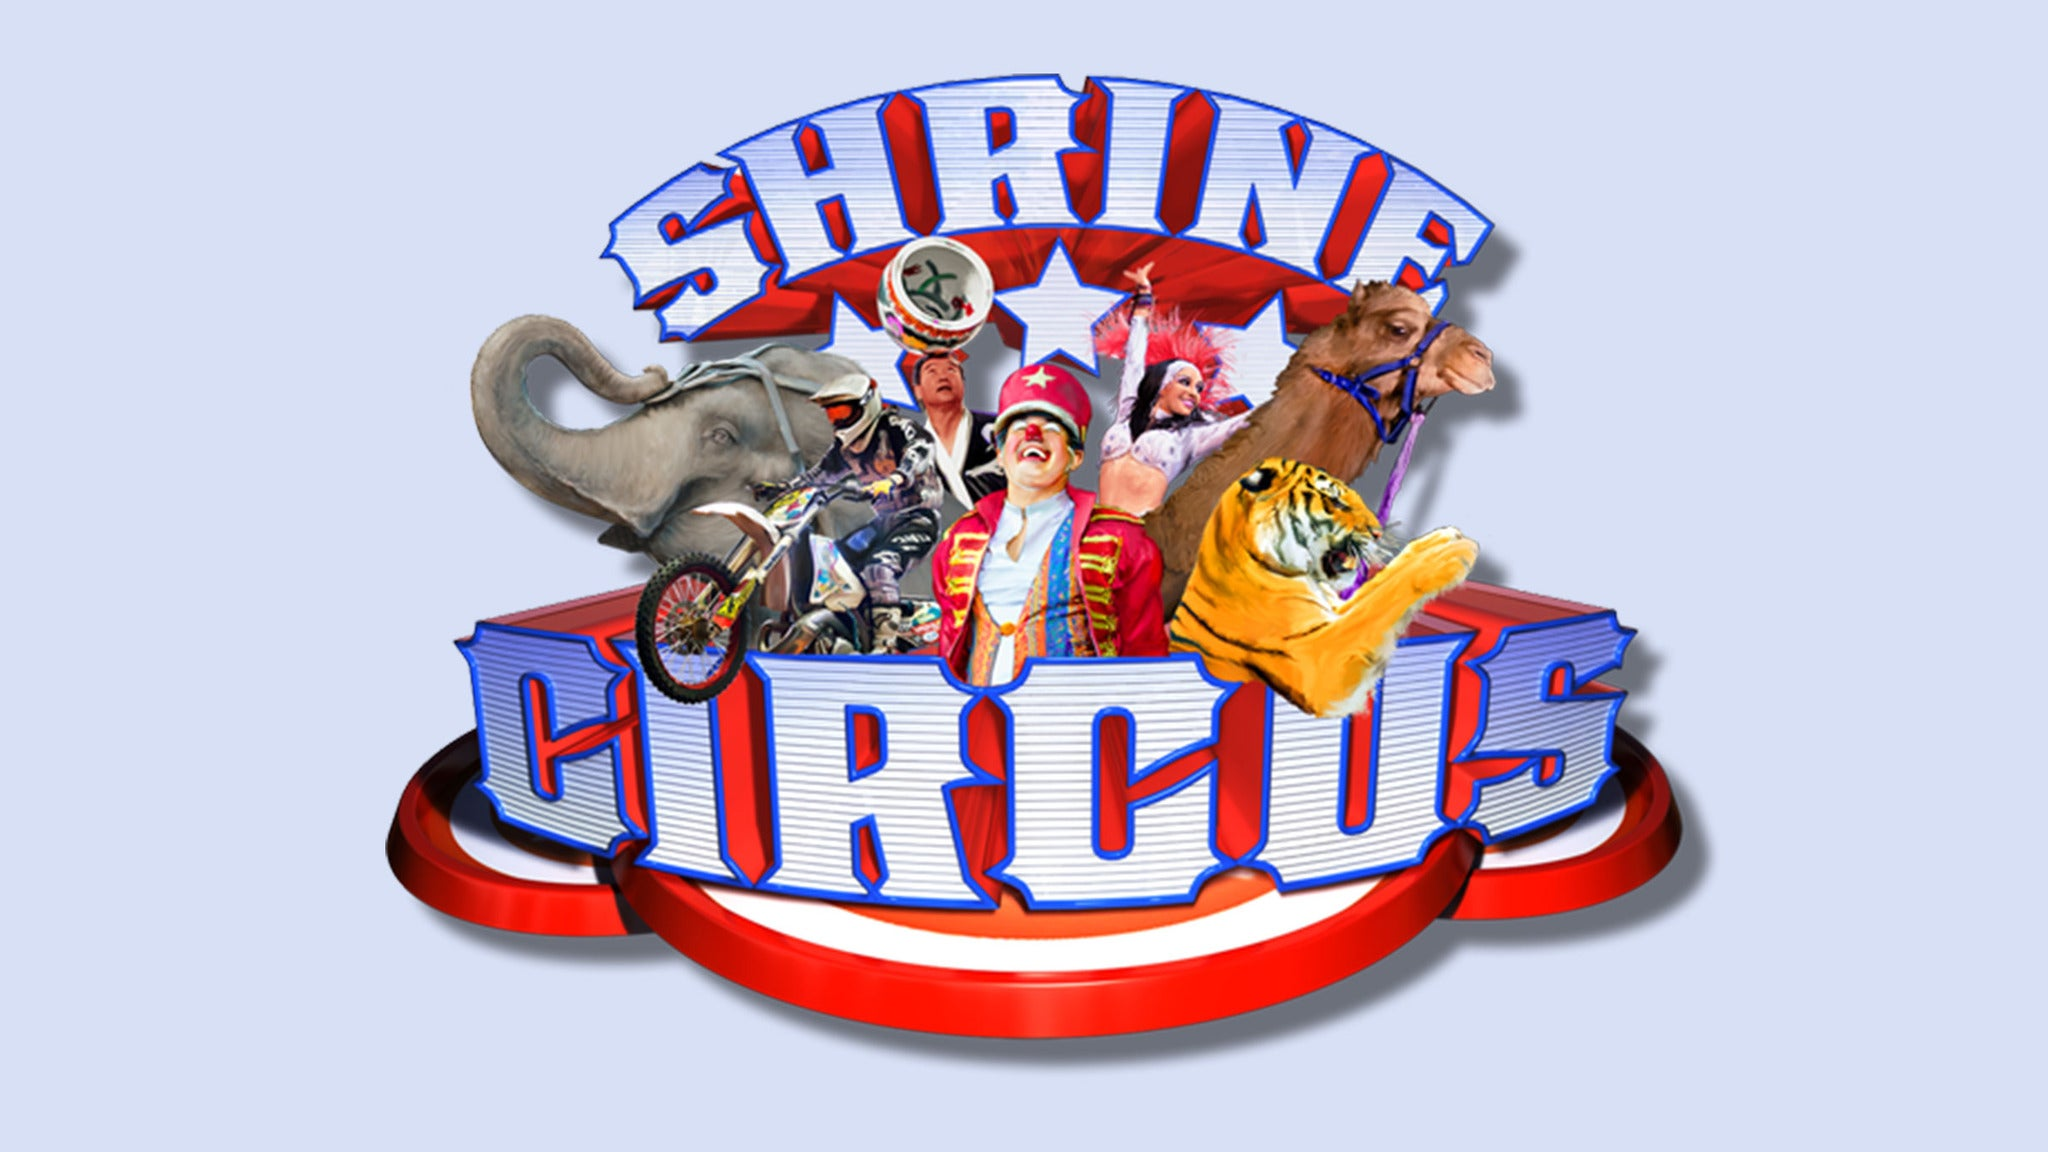 Anah Shrine Circus at Cross Insurance Center